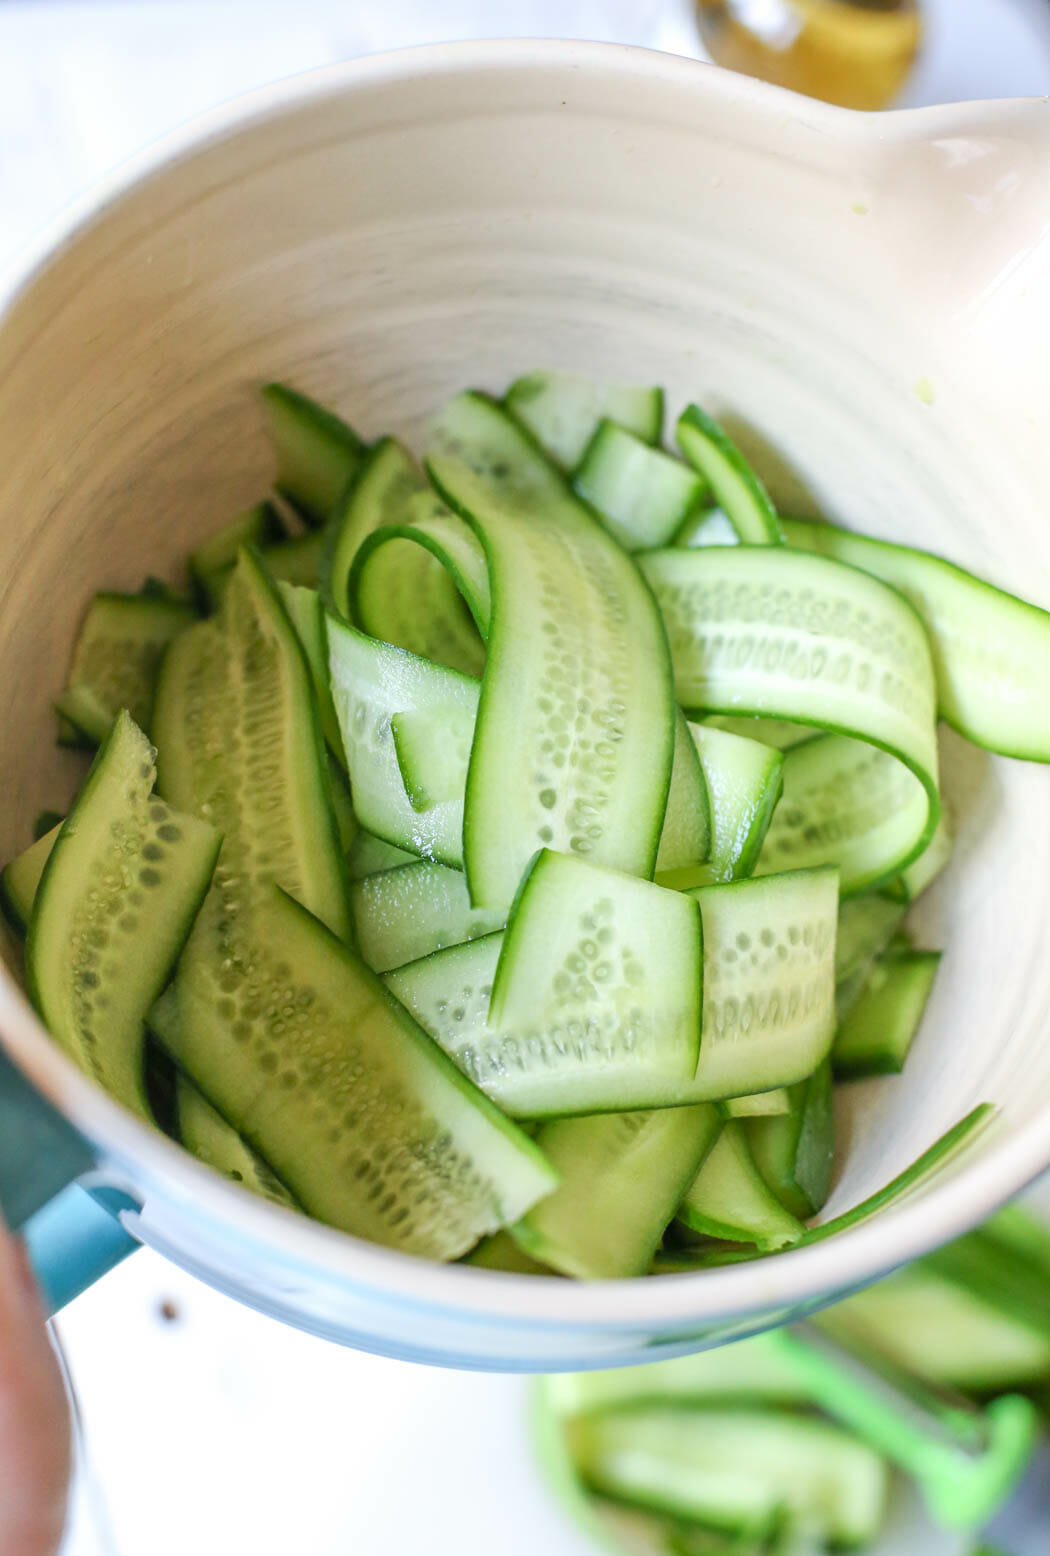 cucumber ribbons in mixing bowl for quick pickles from Our Best Bites